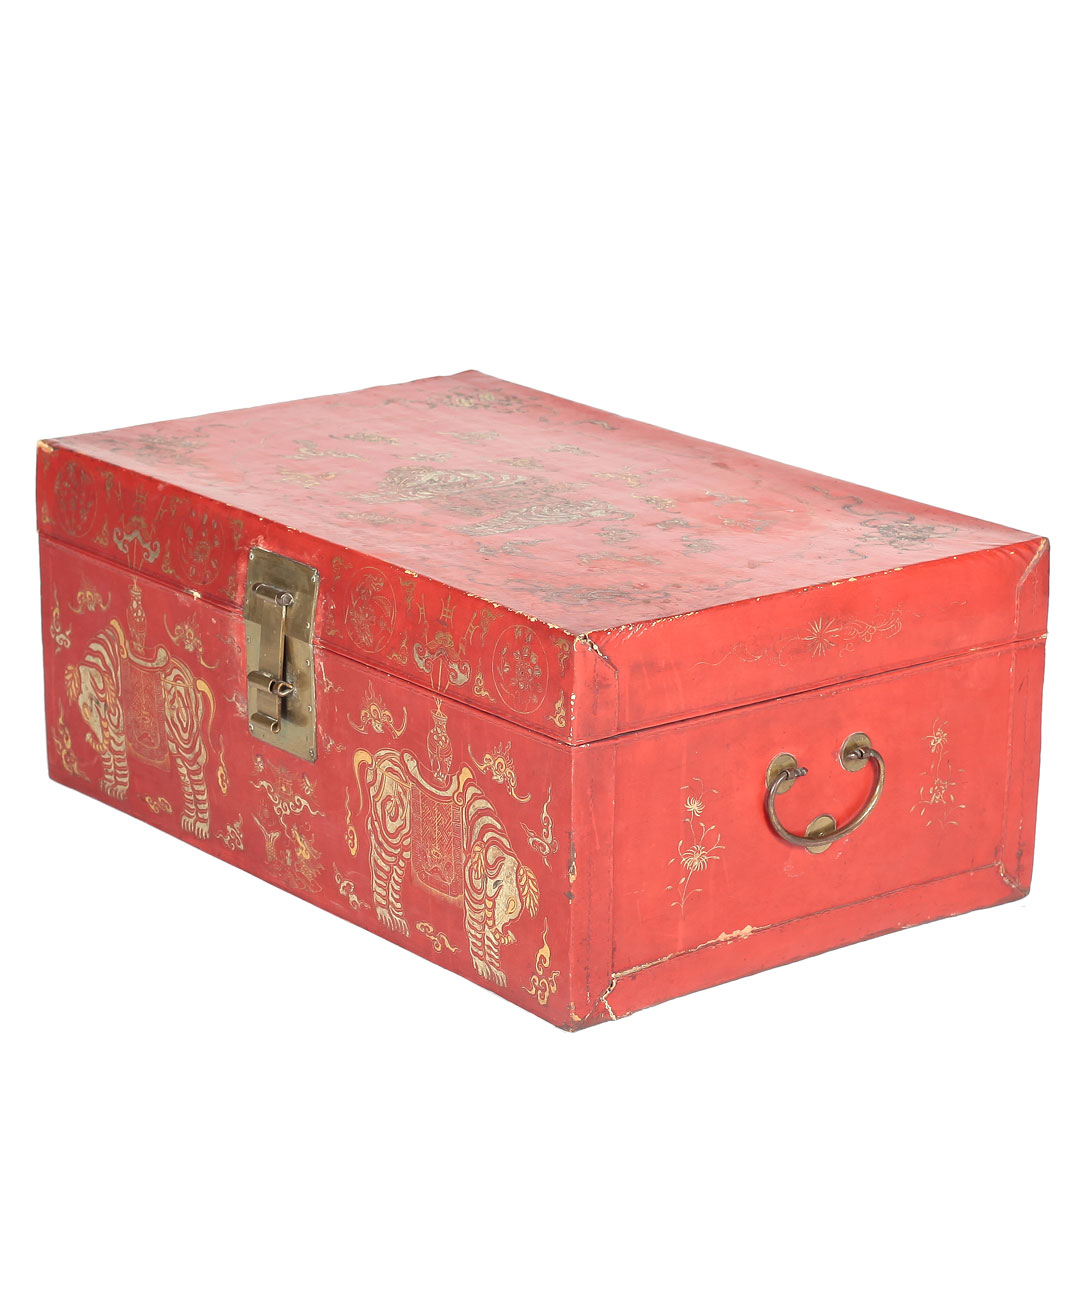 Antique Red Lacquer Trunk